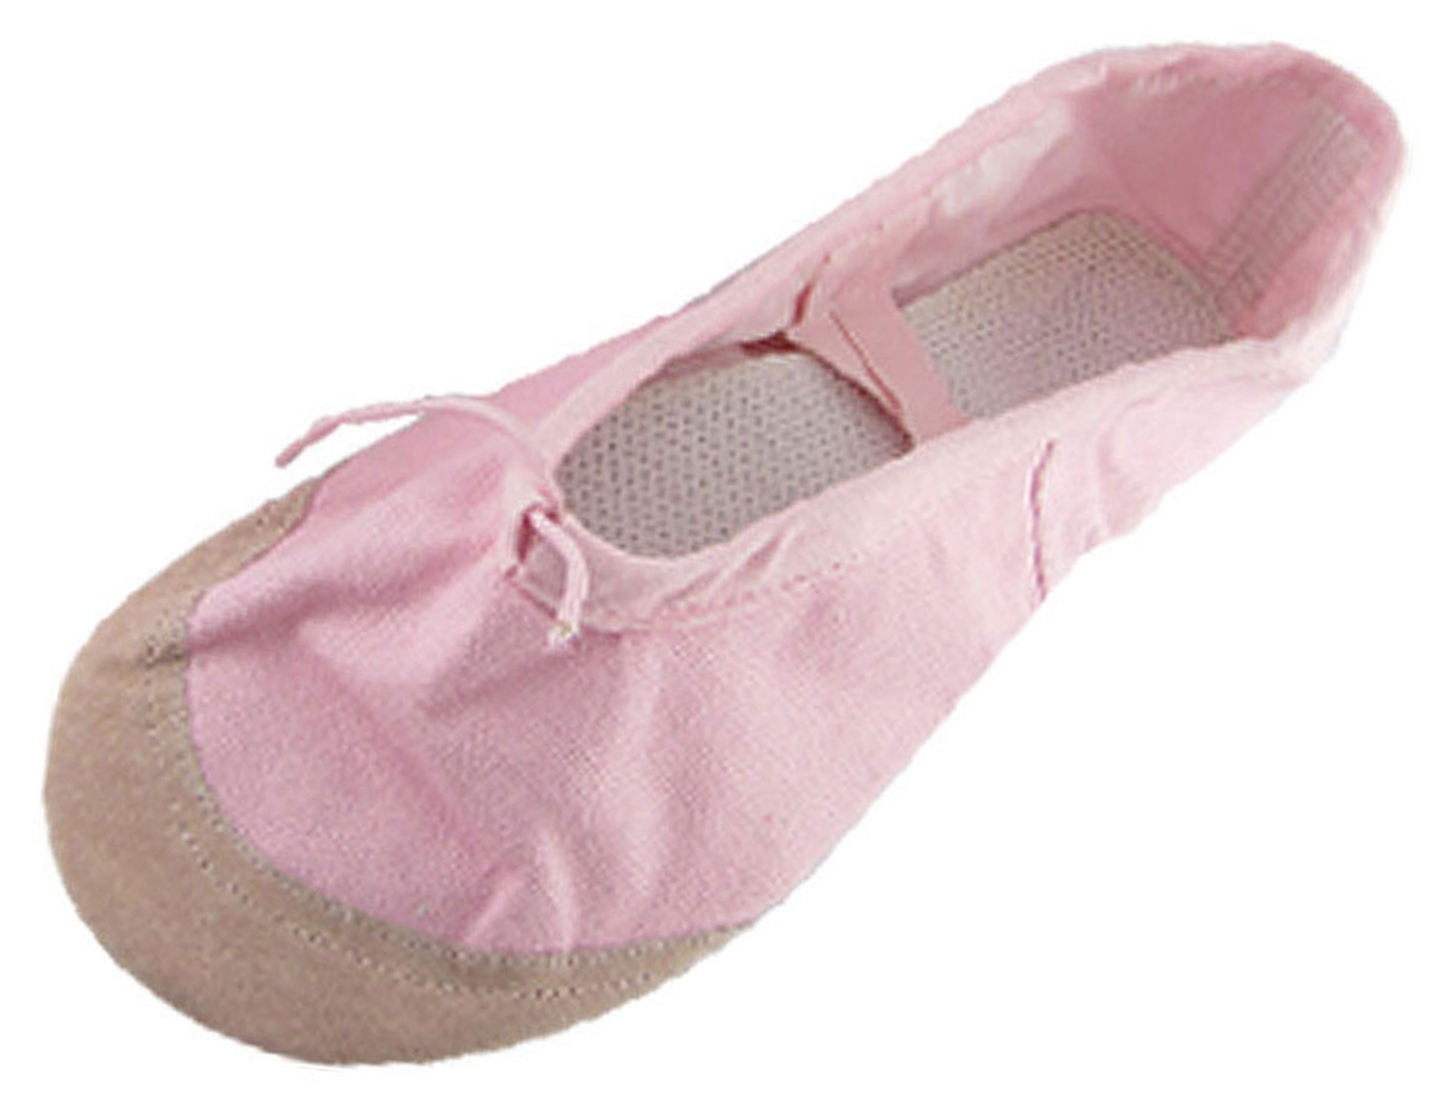 Lady Pink Crossover Canvas Ballet Flat Shoes US Sz 9.5